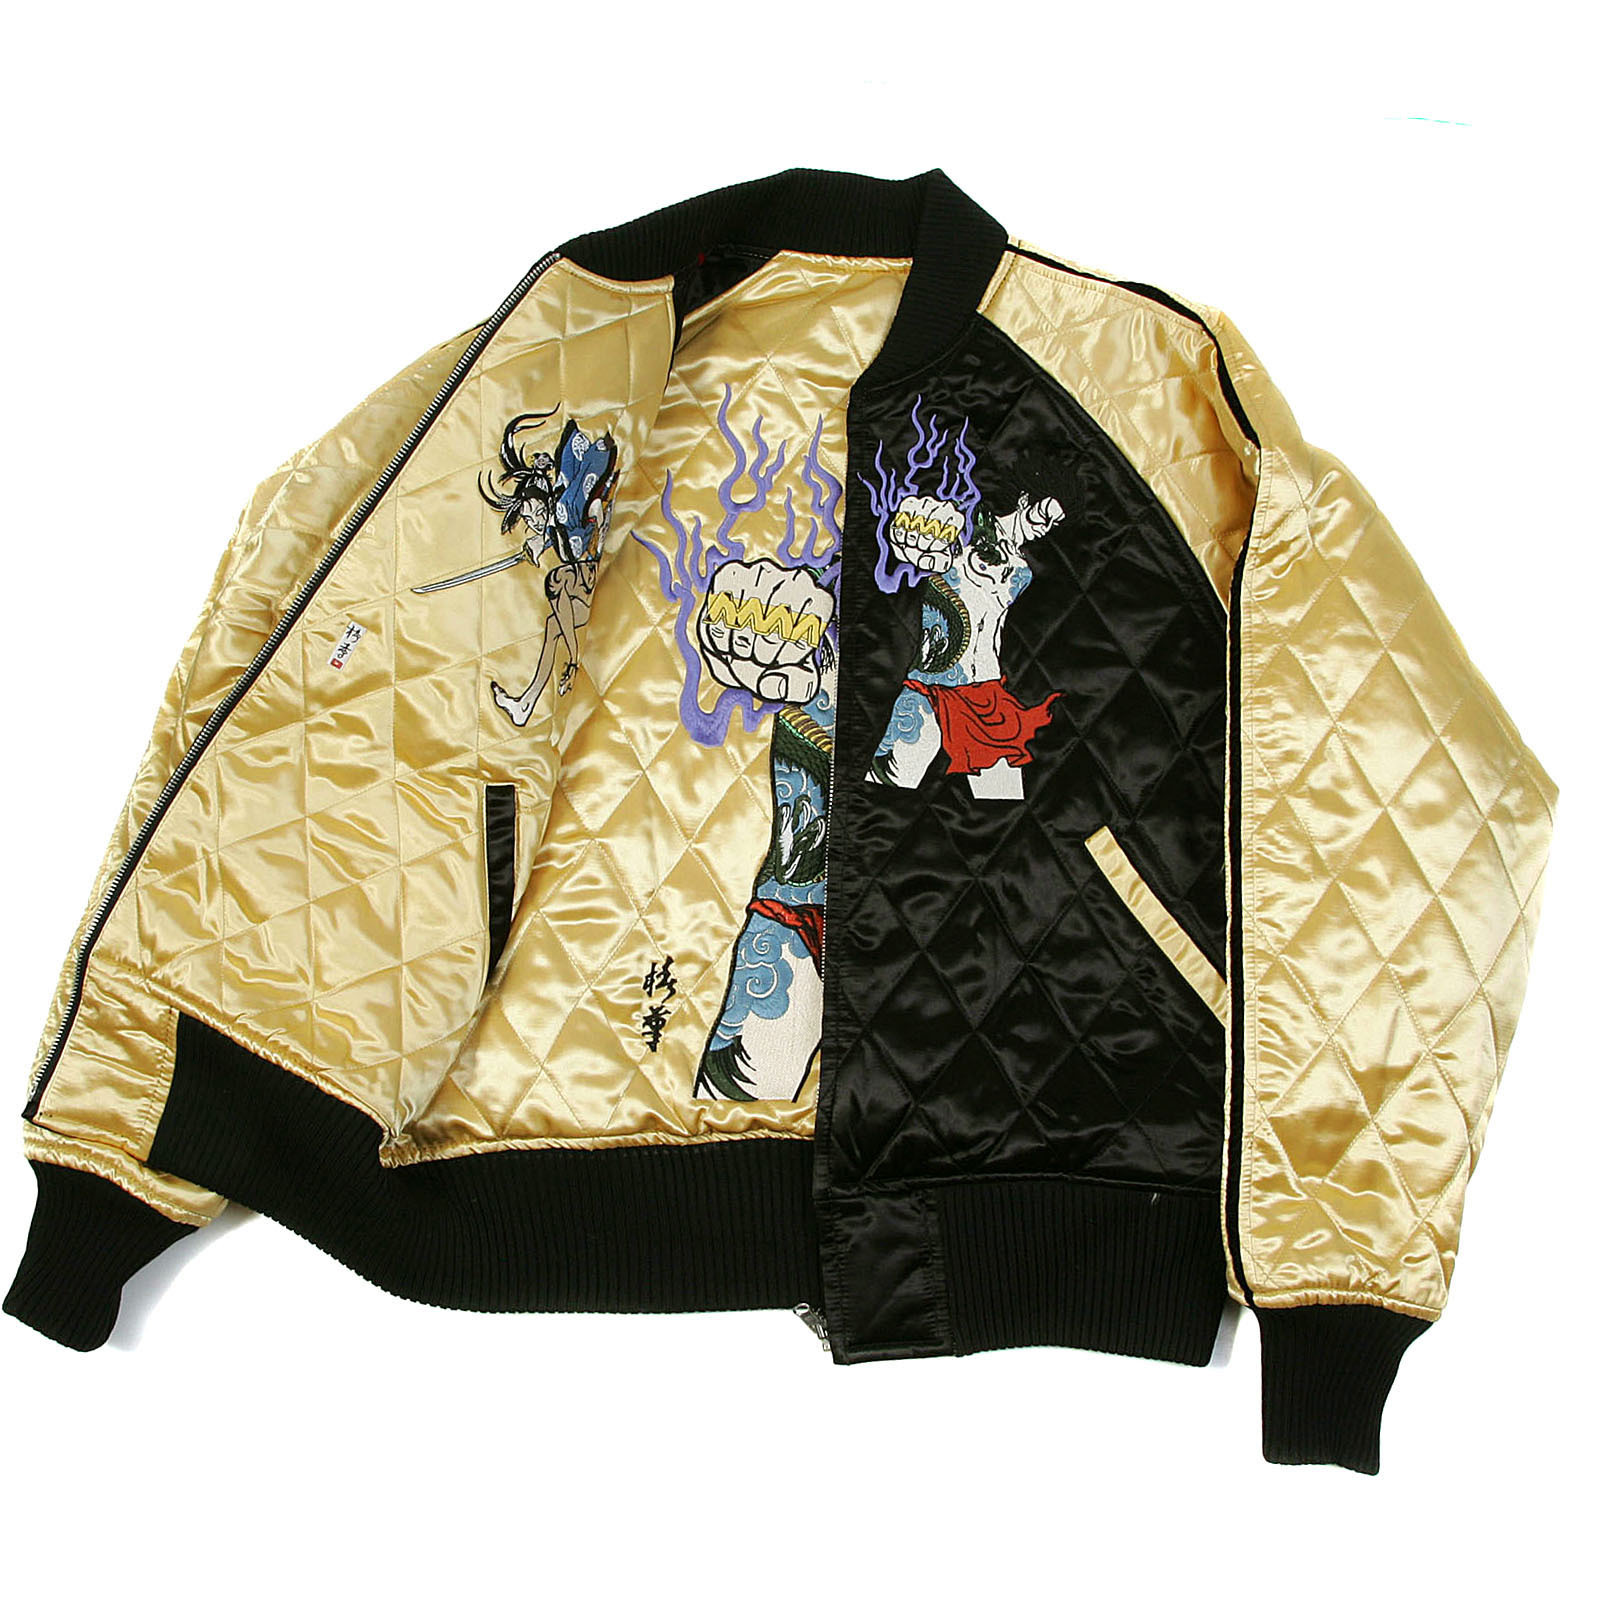 Shop For Gold And Black Quilted Yoropiko Mens Souvenir Jacket